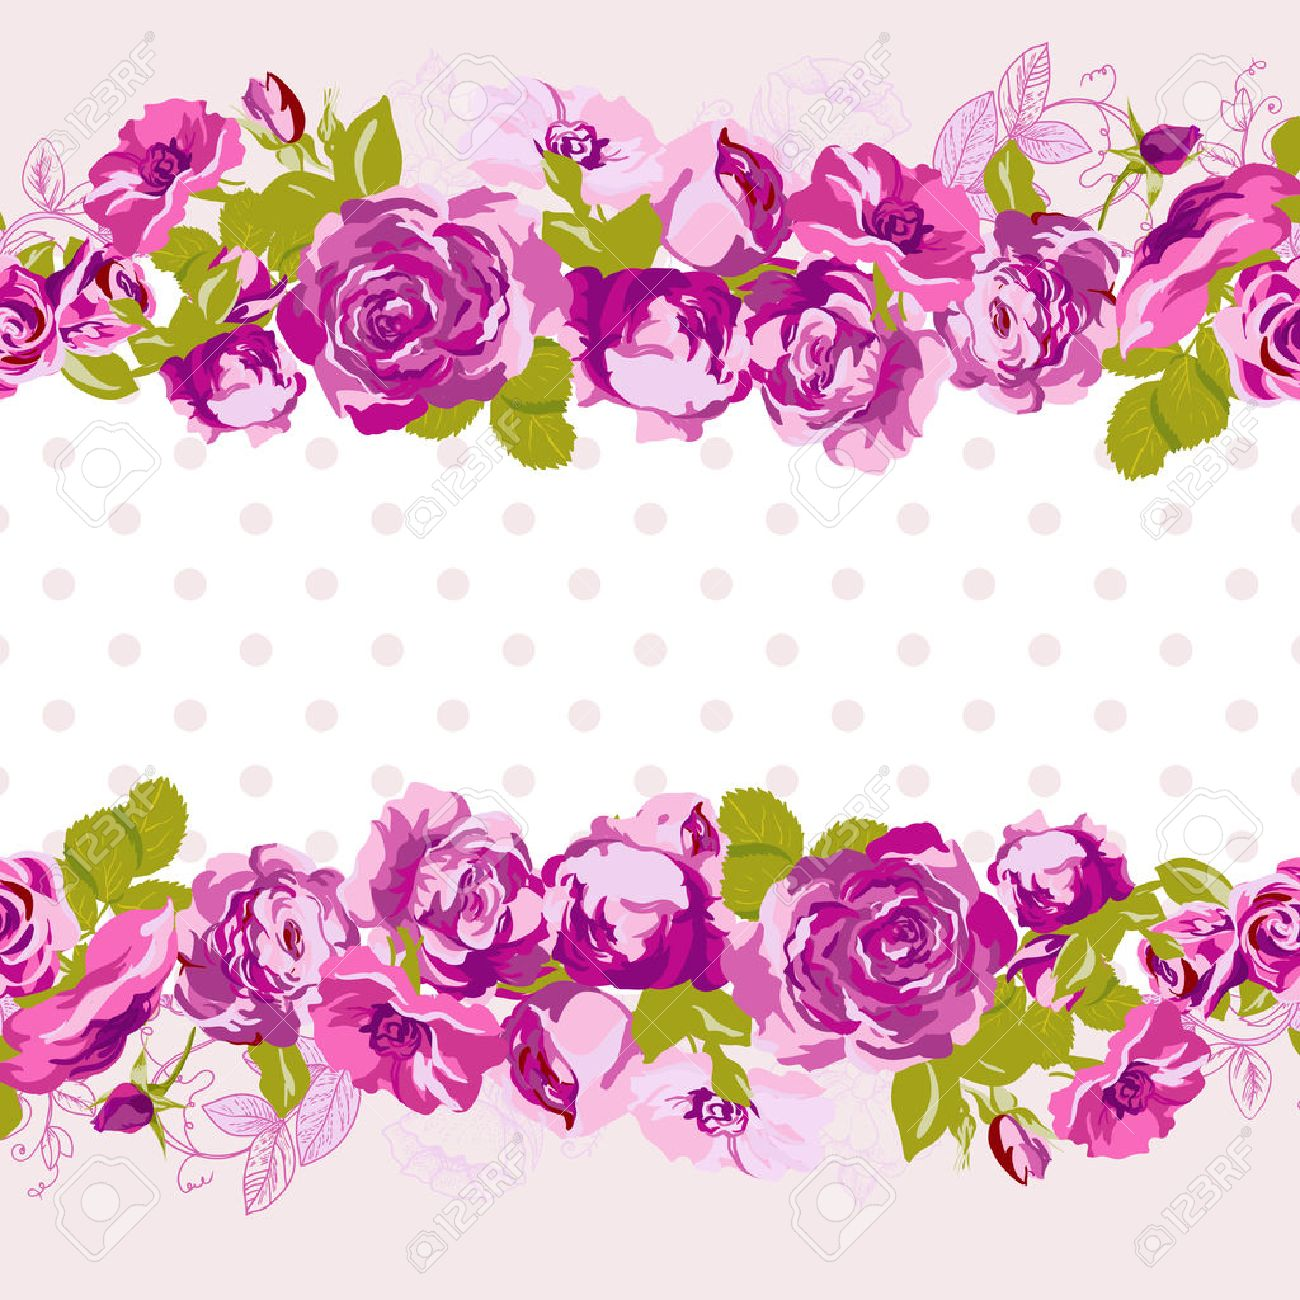 birthday card border design ; 29255650-seamless-border-of-blossom-roses-vector-floral-greeting-card-spring-background-for-wedding-birthday-